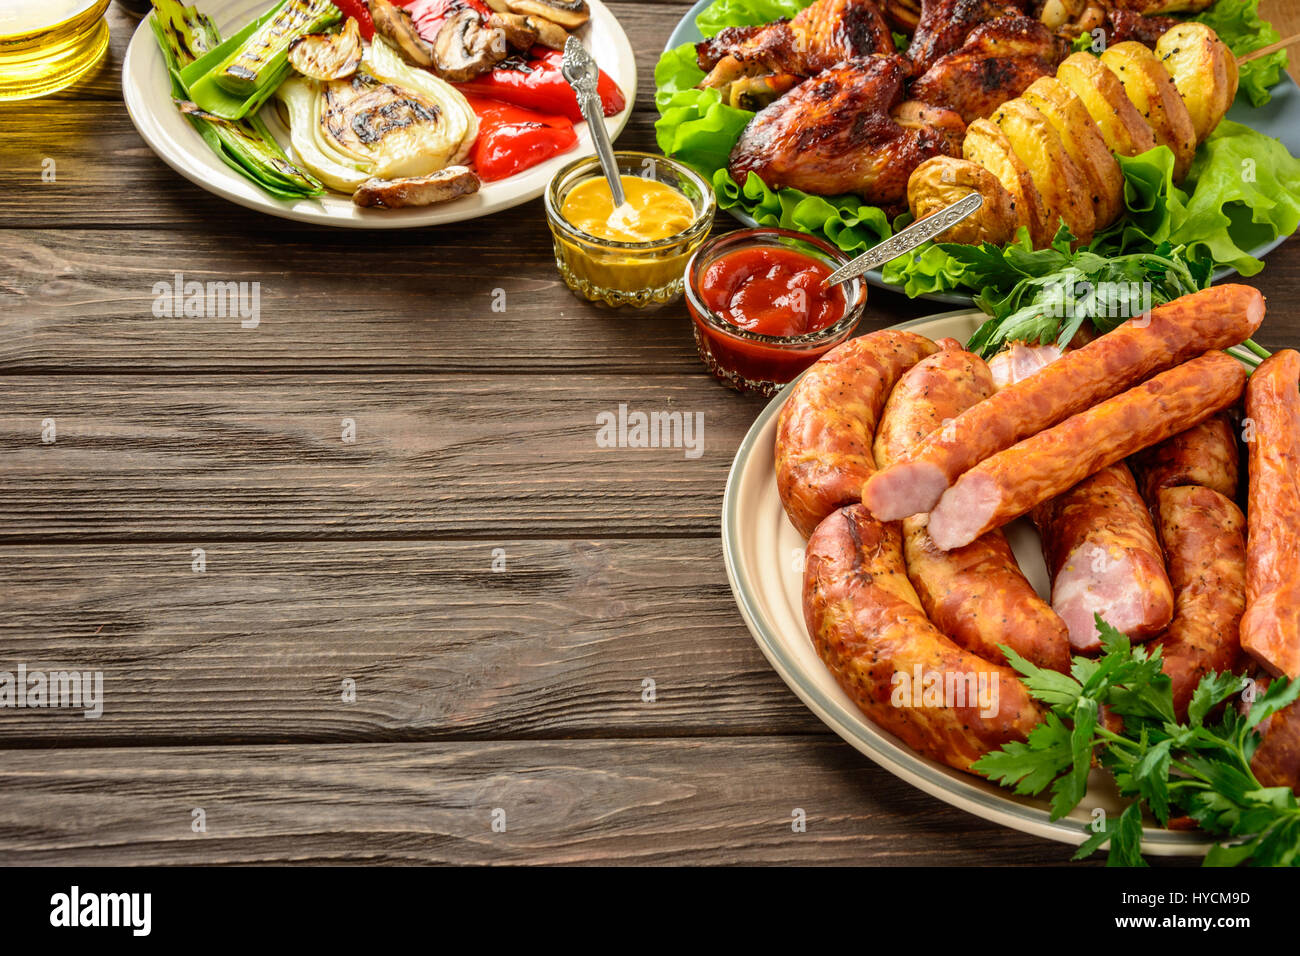 Dinner table with food - Dinner Table With Variety Food Fried Chicken Wings Sausages Grilled Vegetables In A